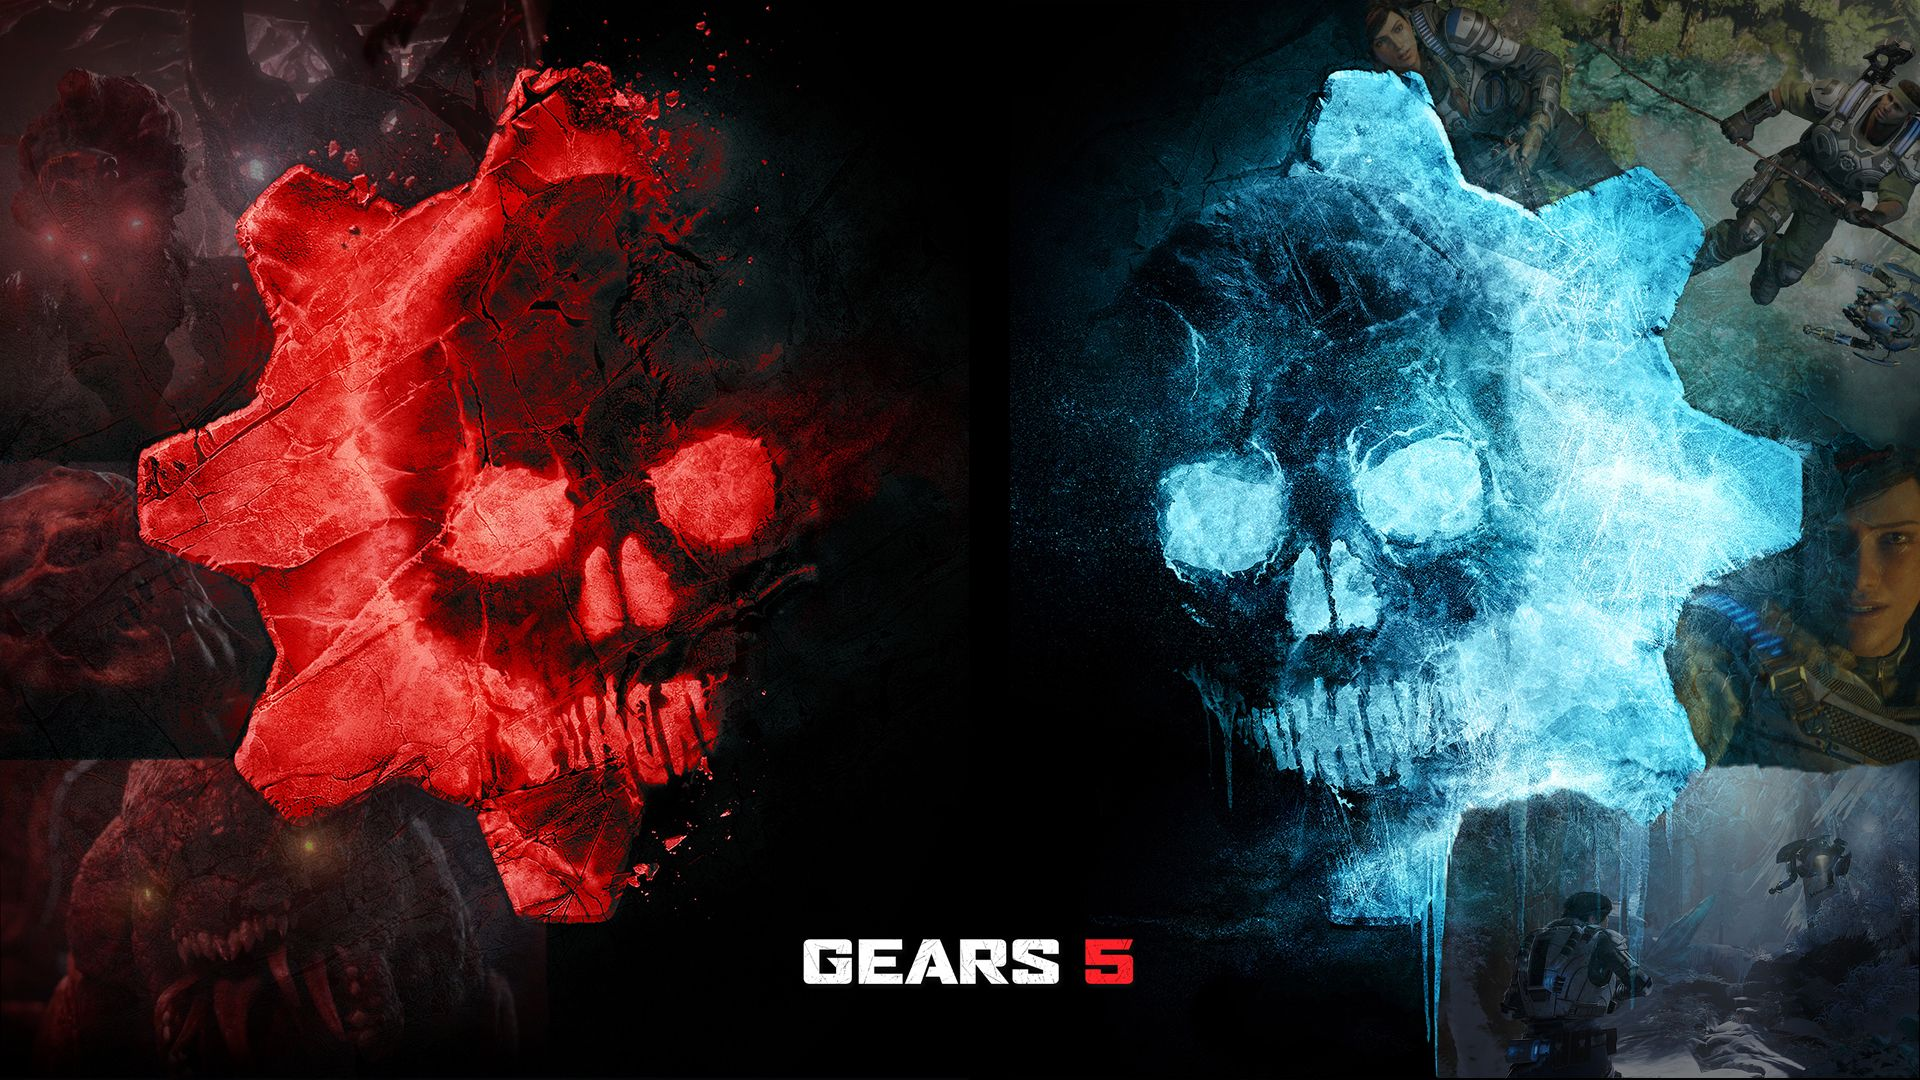 Gears 5 Wallpapers Top Free Gears 5 Backgrounds Wallpaperaccess